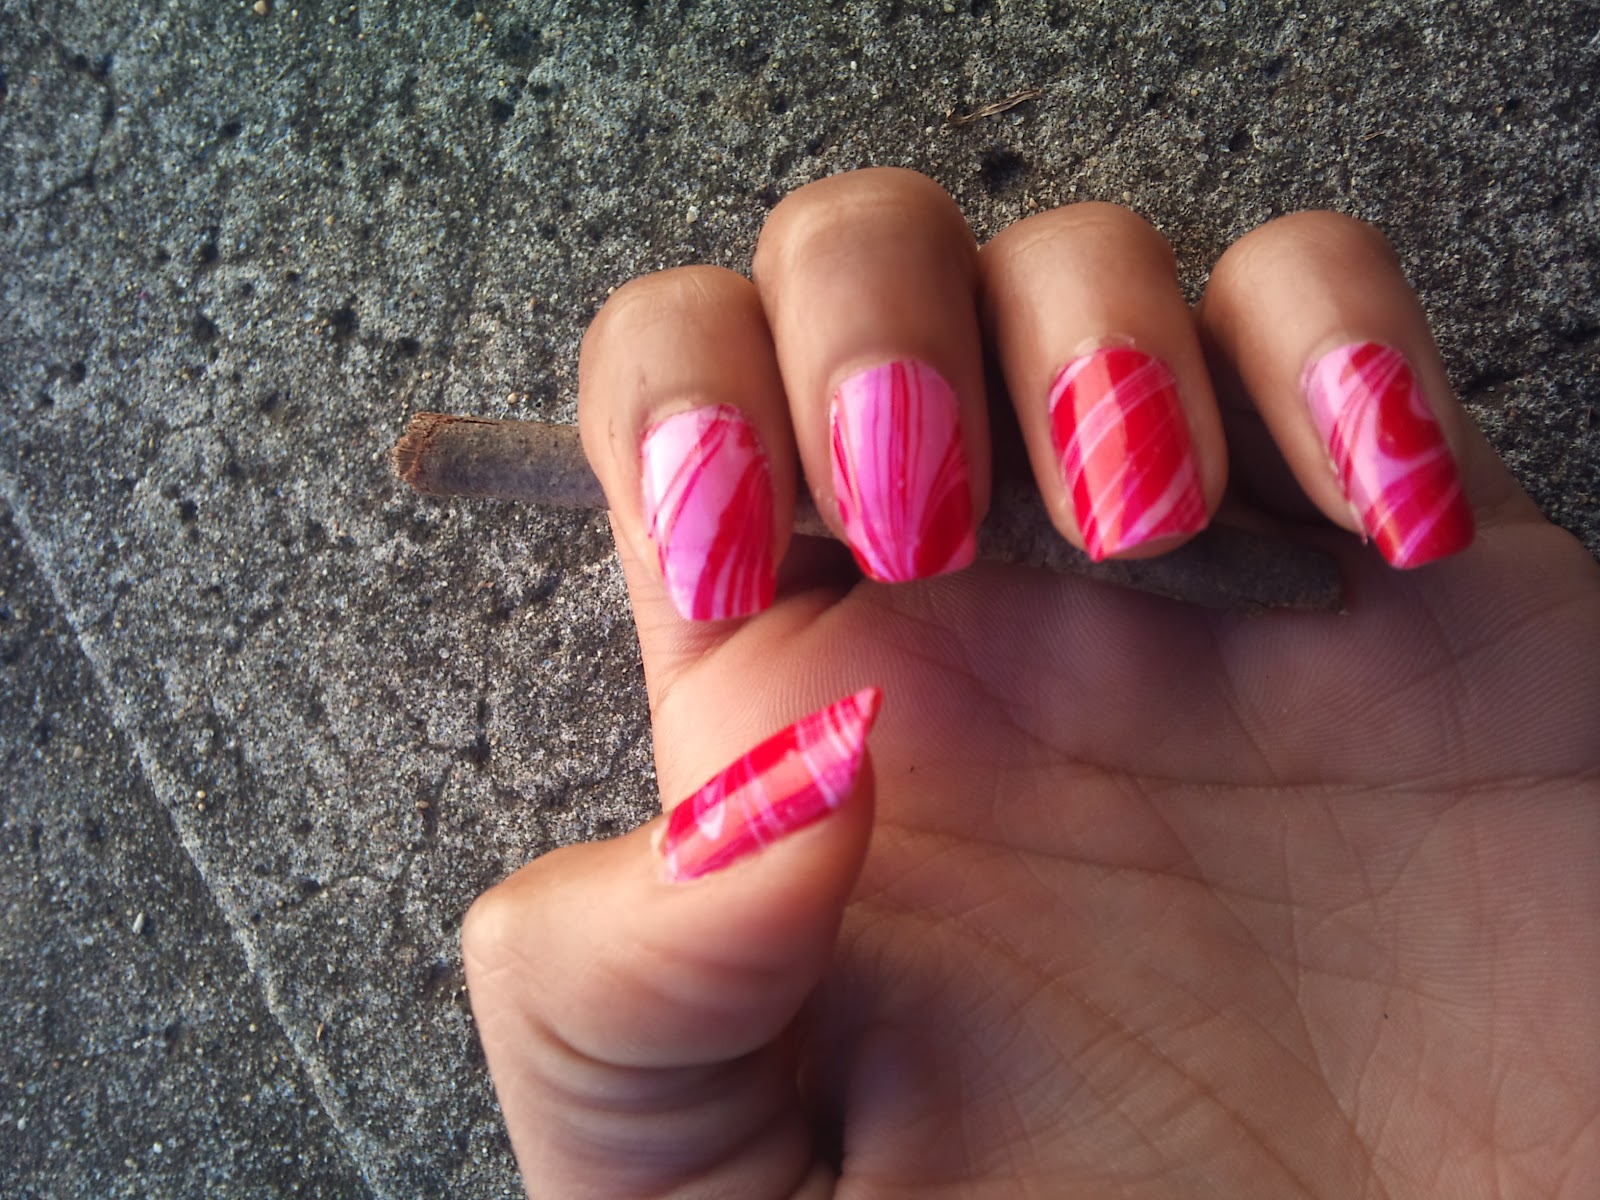 All Her Pretty Little Things: No such thing as too many pink polishes!